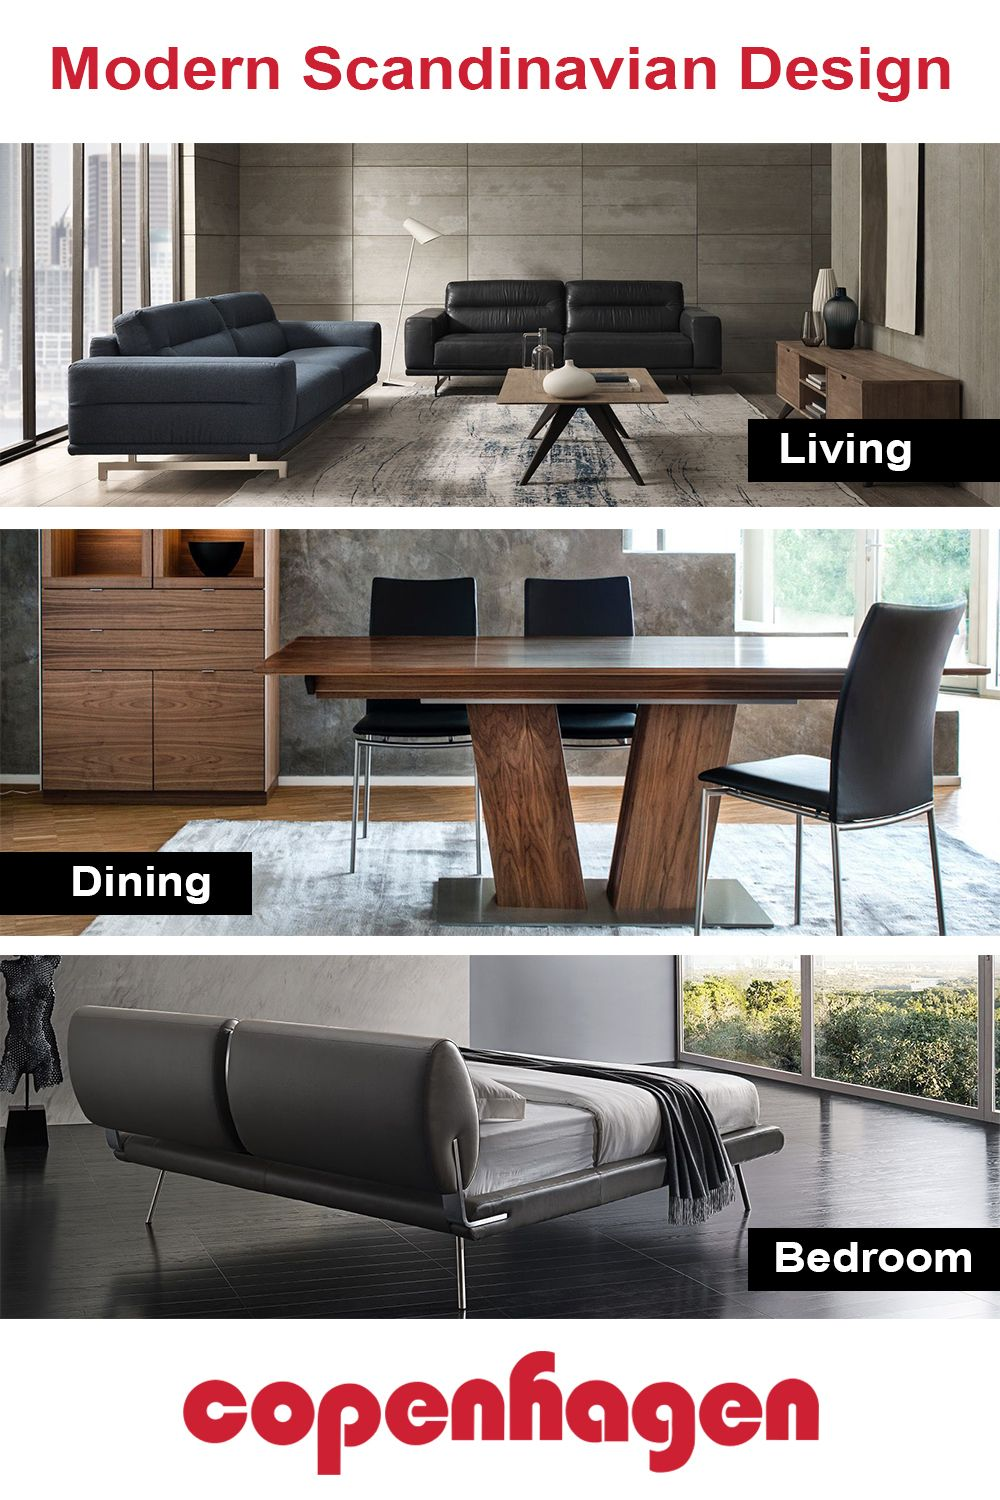 Modern and contemporary furniture accessories and home décor scandinavian design suitable for every lifestyle